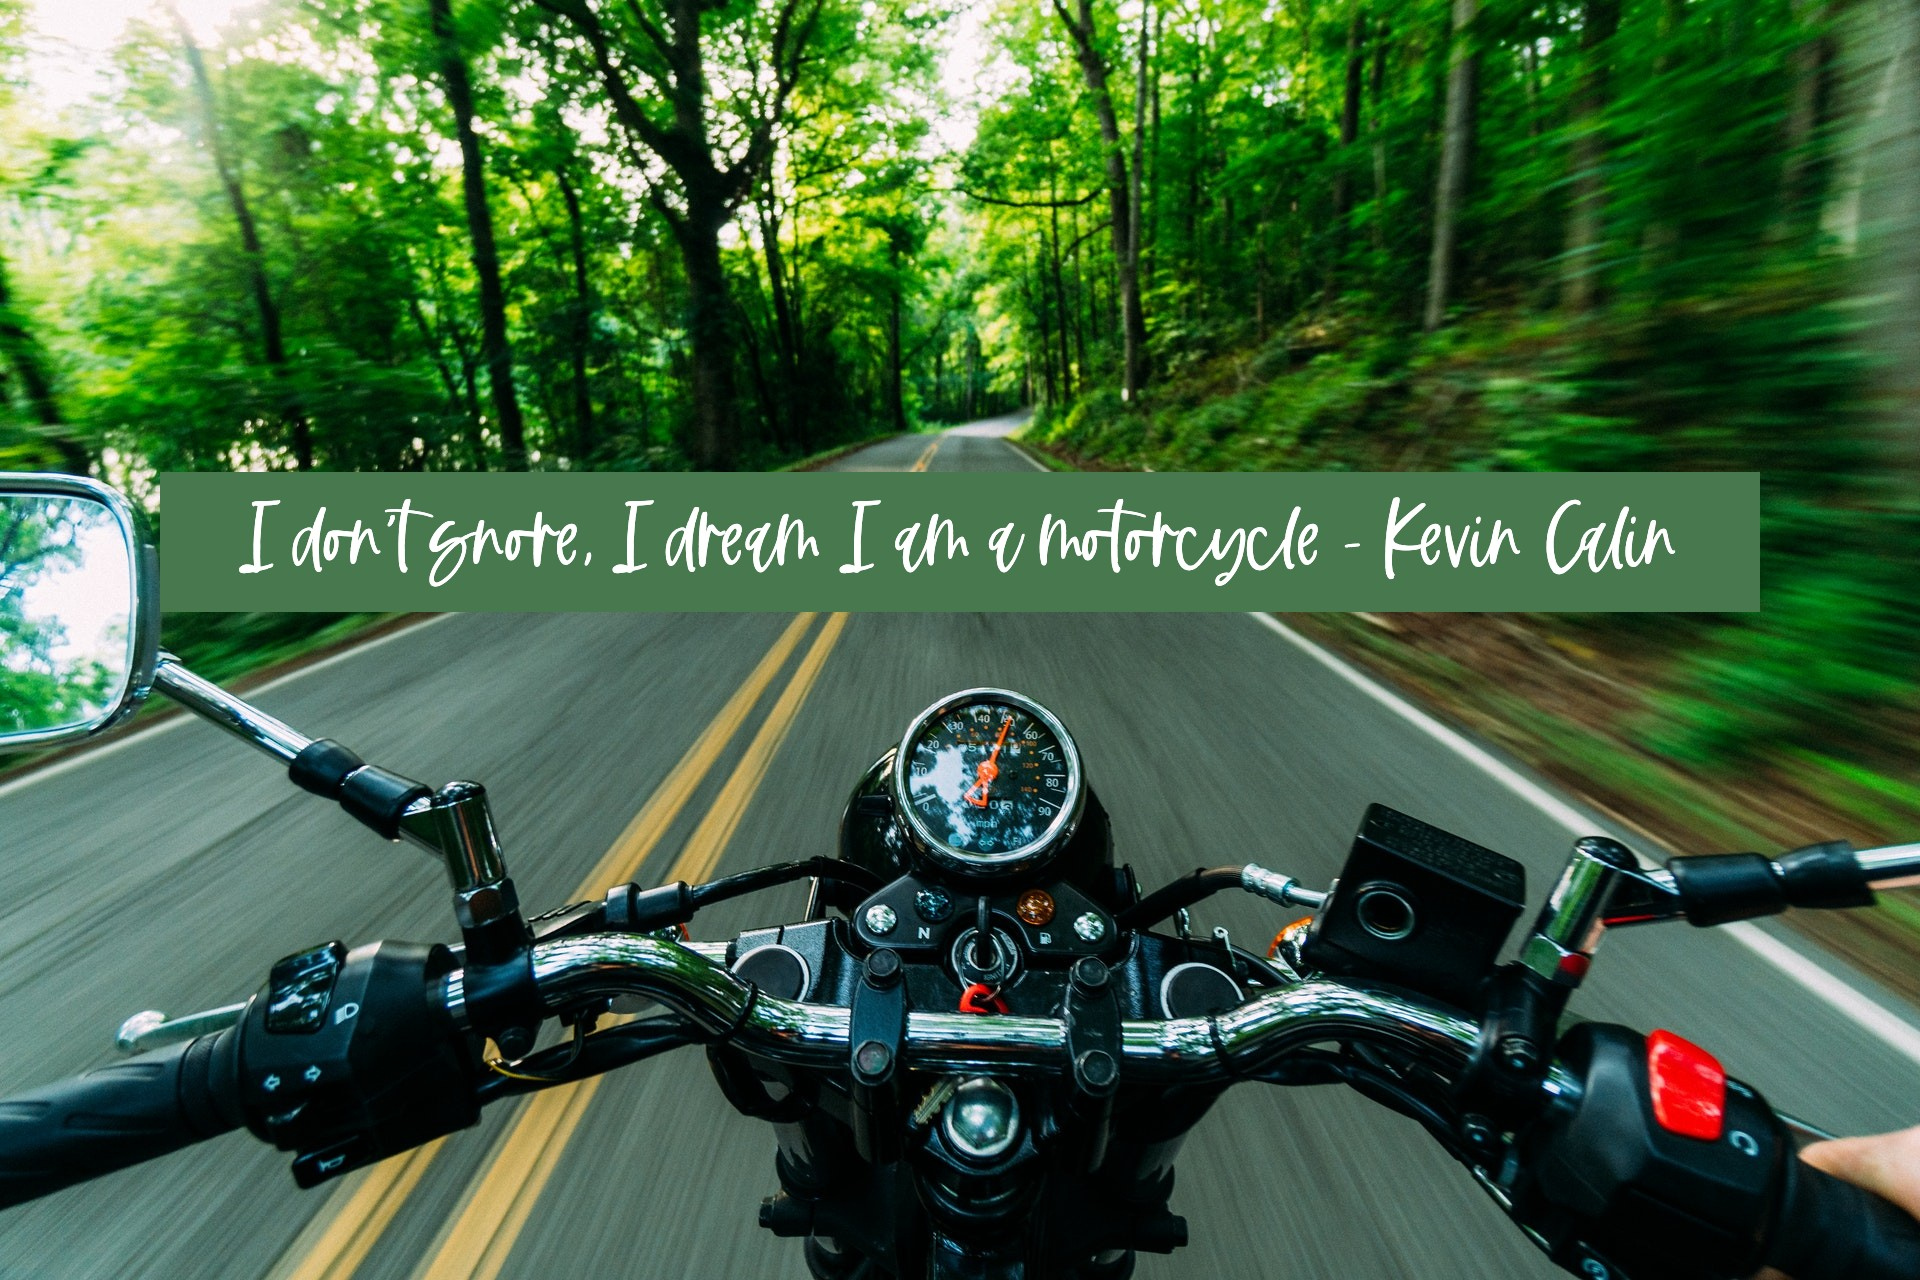 I don't snore, I dream I am a motorcycle. - Kevin Calin